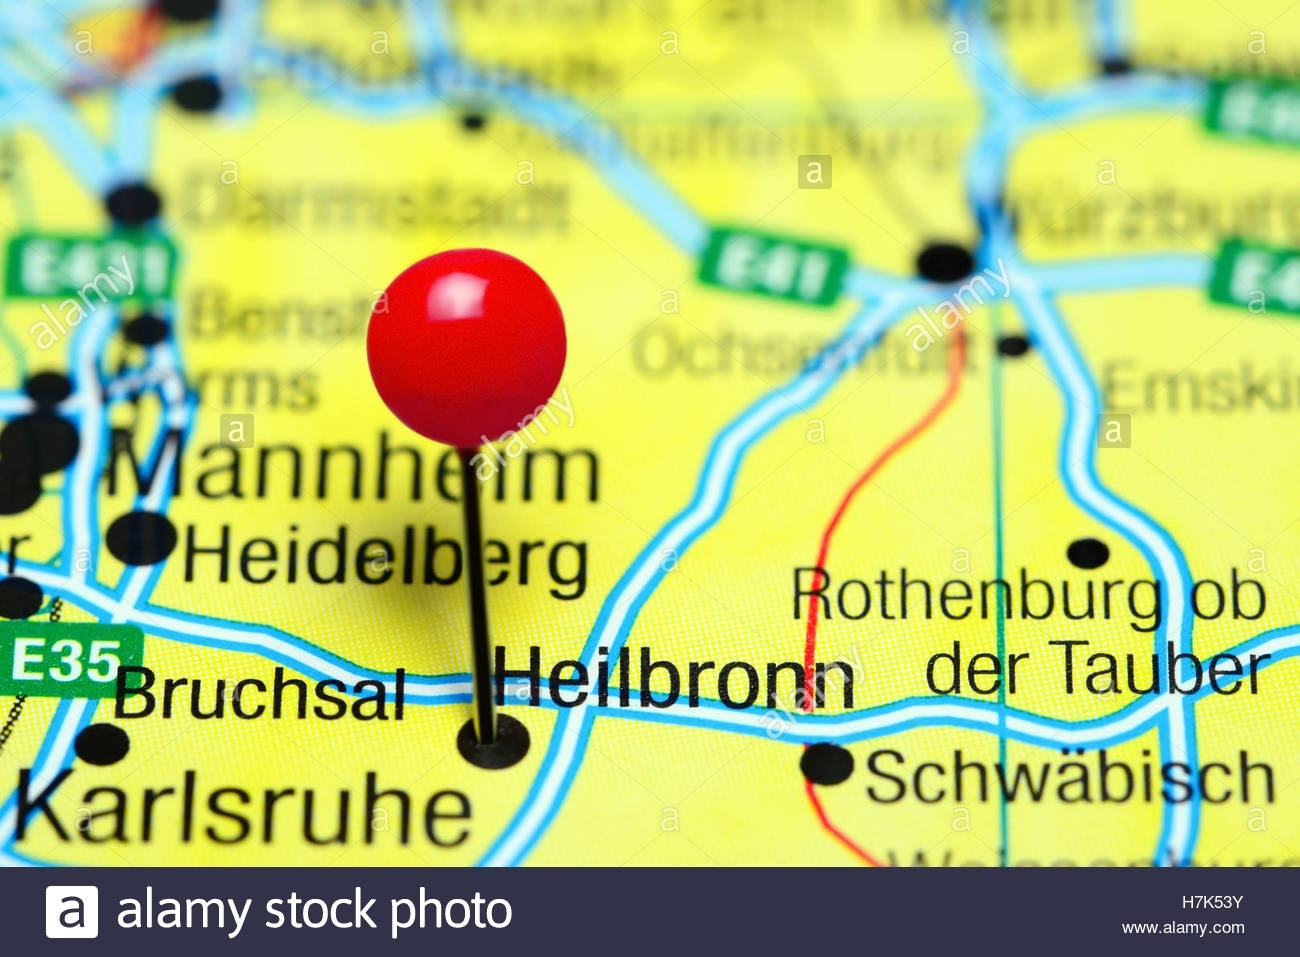 Heilbronn Pinned On A Map Of Germany Stock Photo: 125196287 - Alamy pertaining to Heilbronn Germany Map